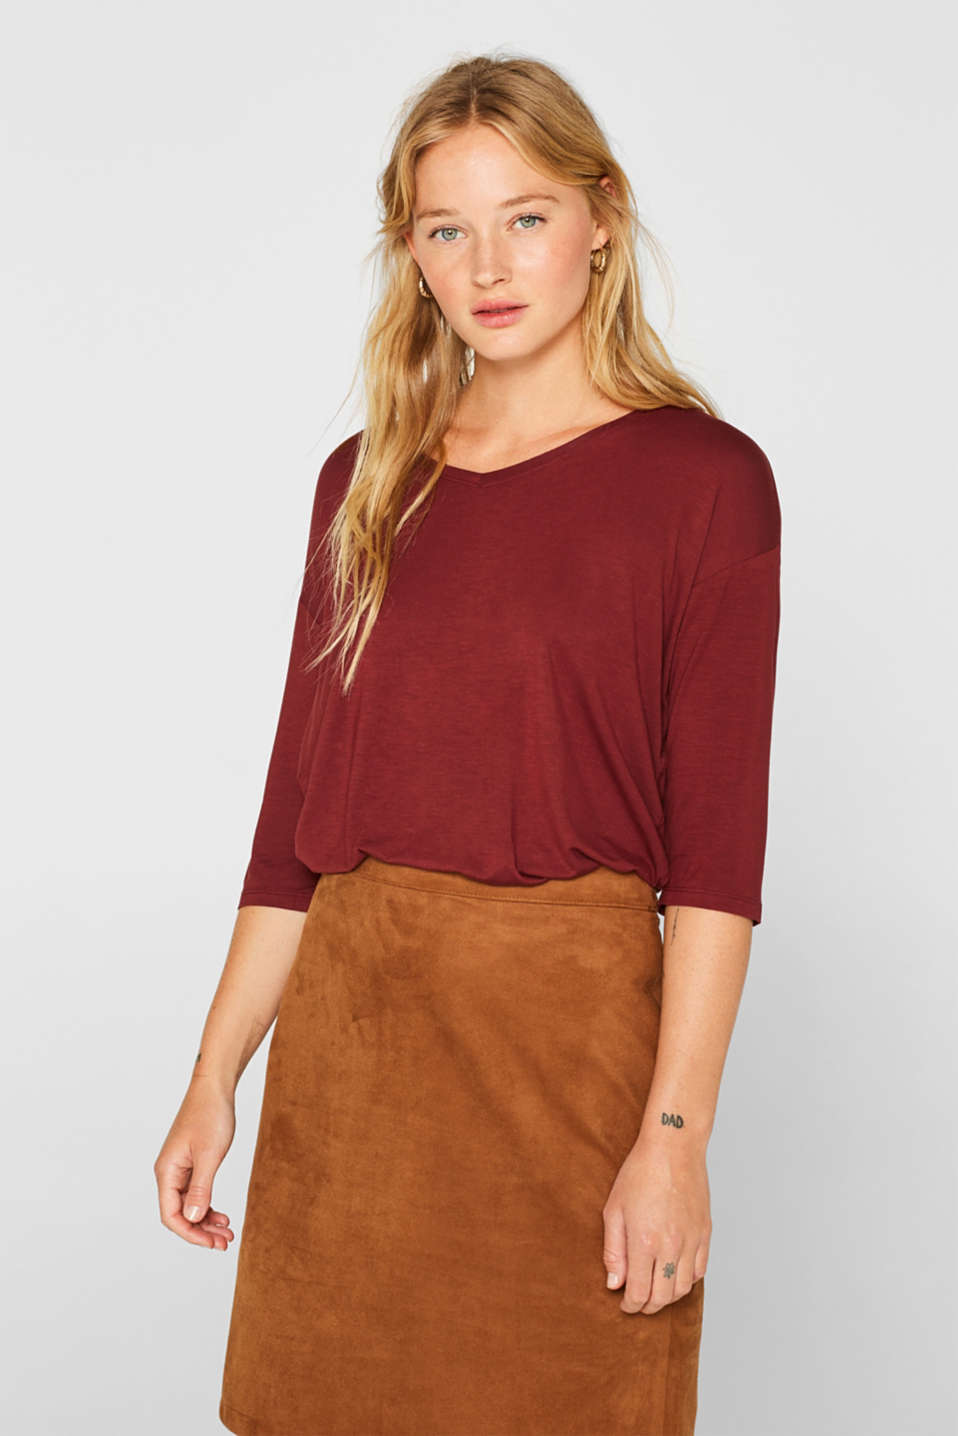 Esprit - Flowing stretch T-shirt with a V-neckline